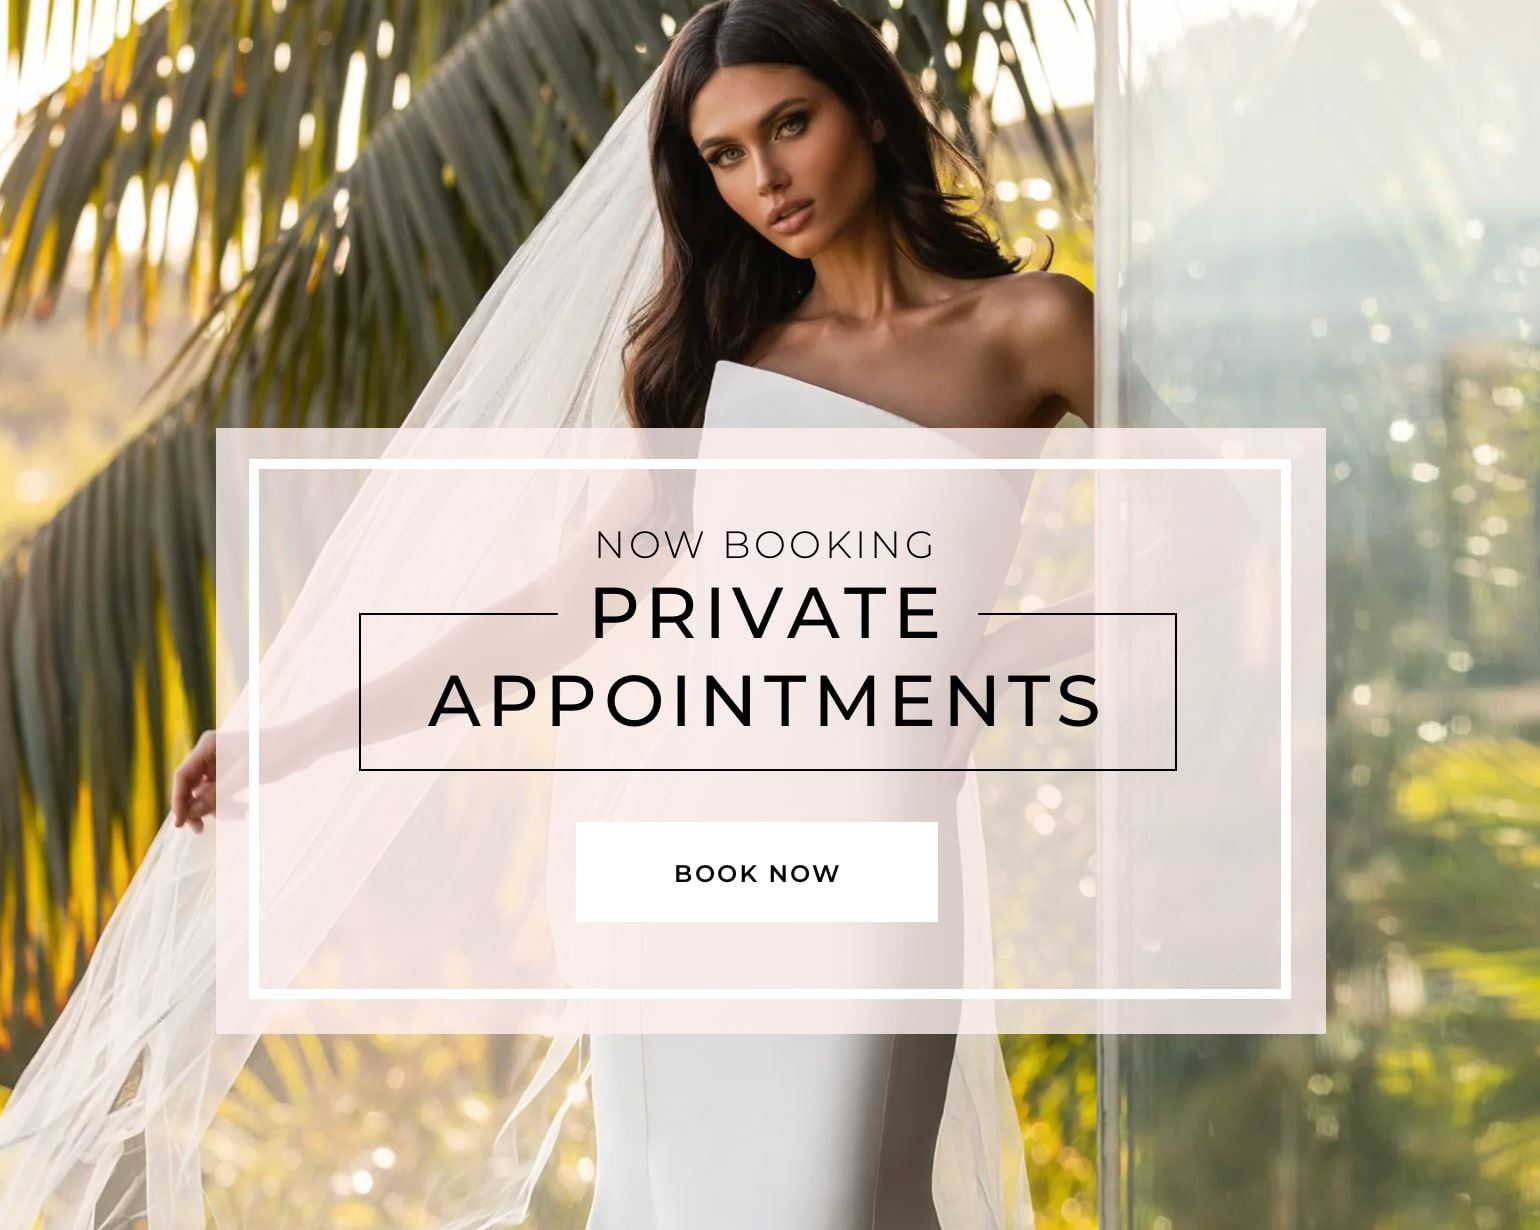 Now Booking Private appointments banner on mobile device